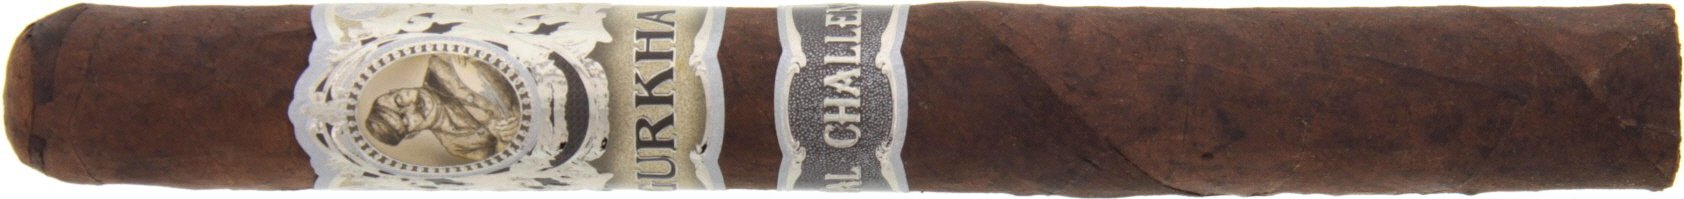 Gurkha Royal Challenge MADURO Churchill